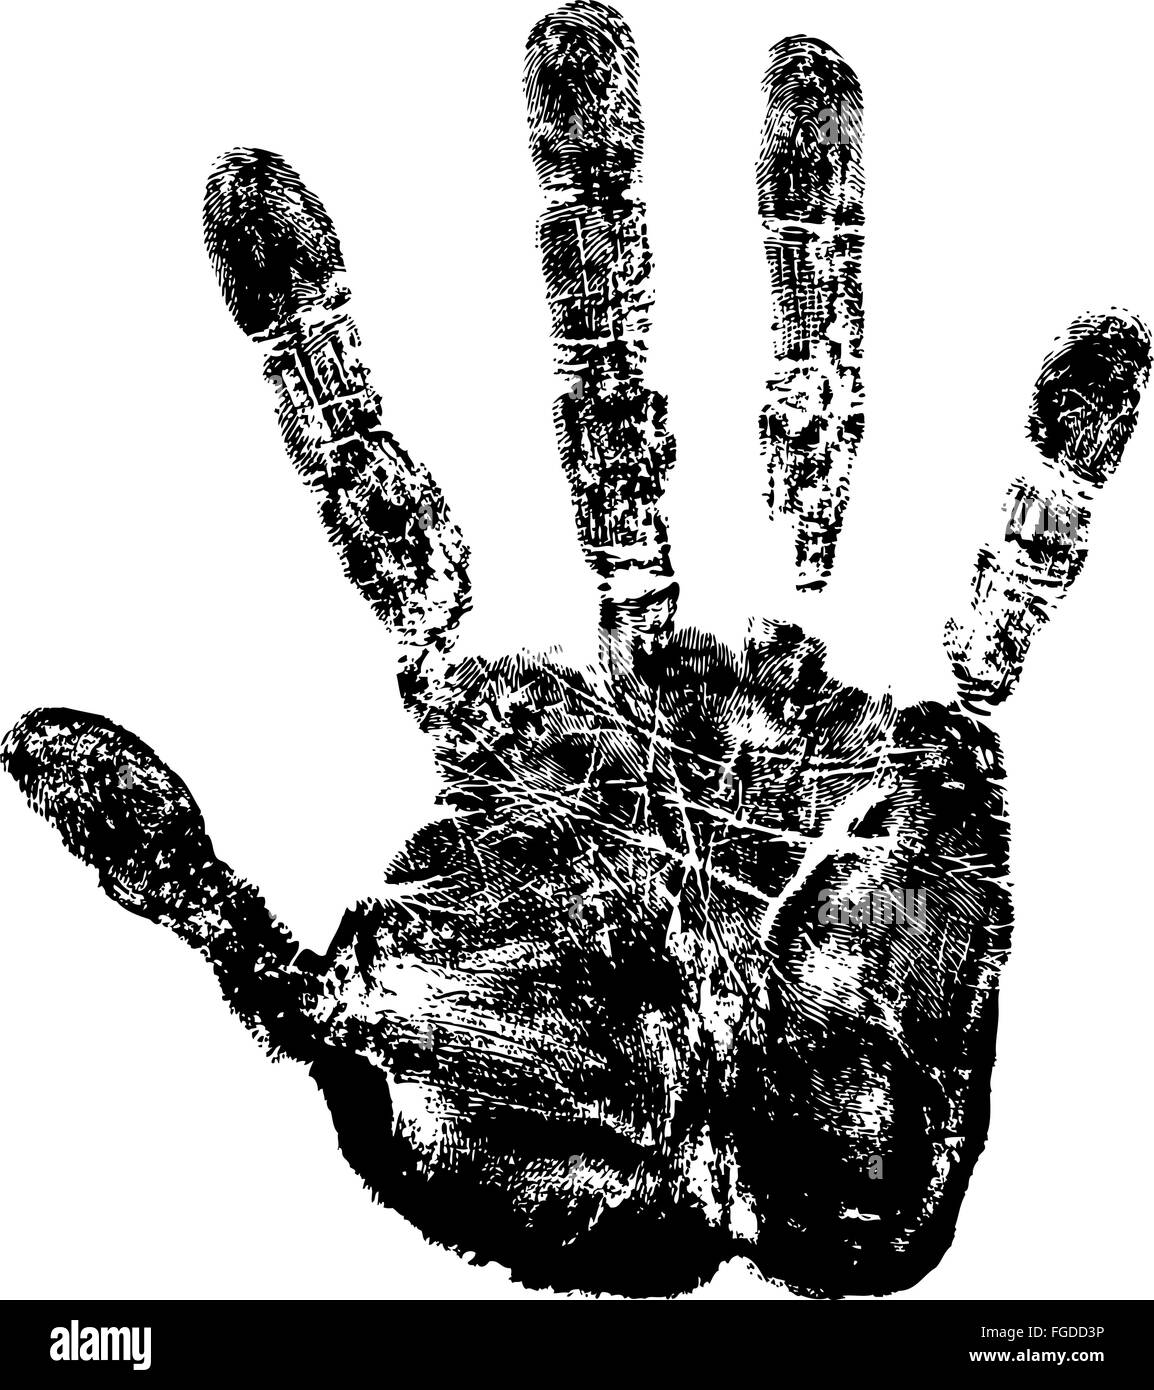 Vector image of hand print. - Stock Image